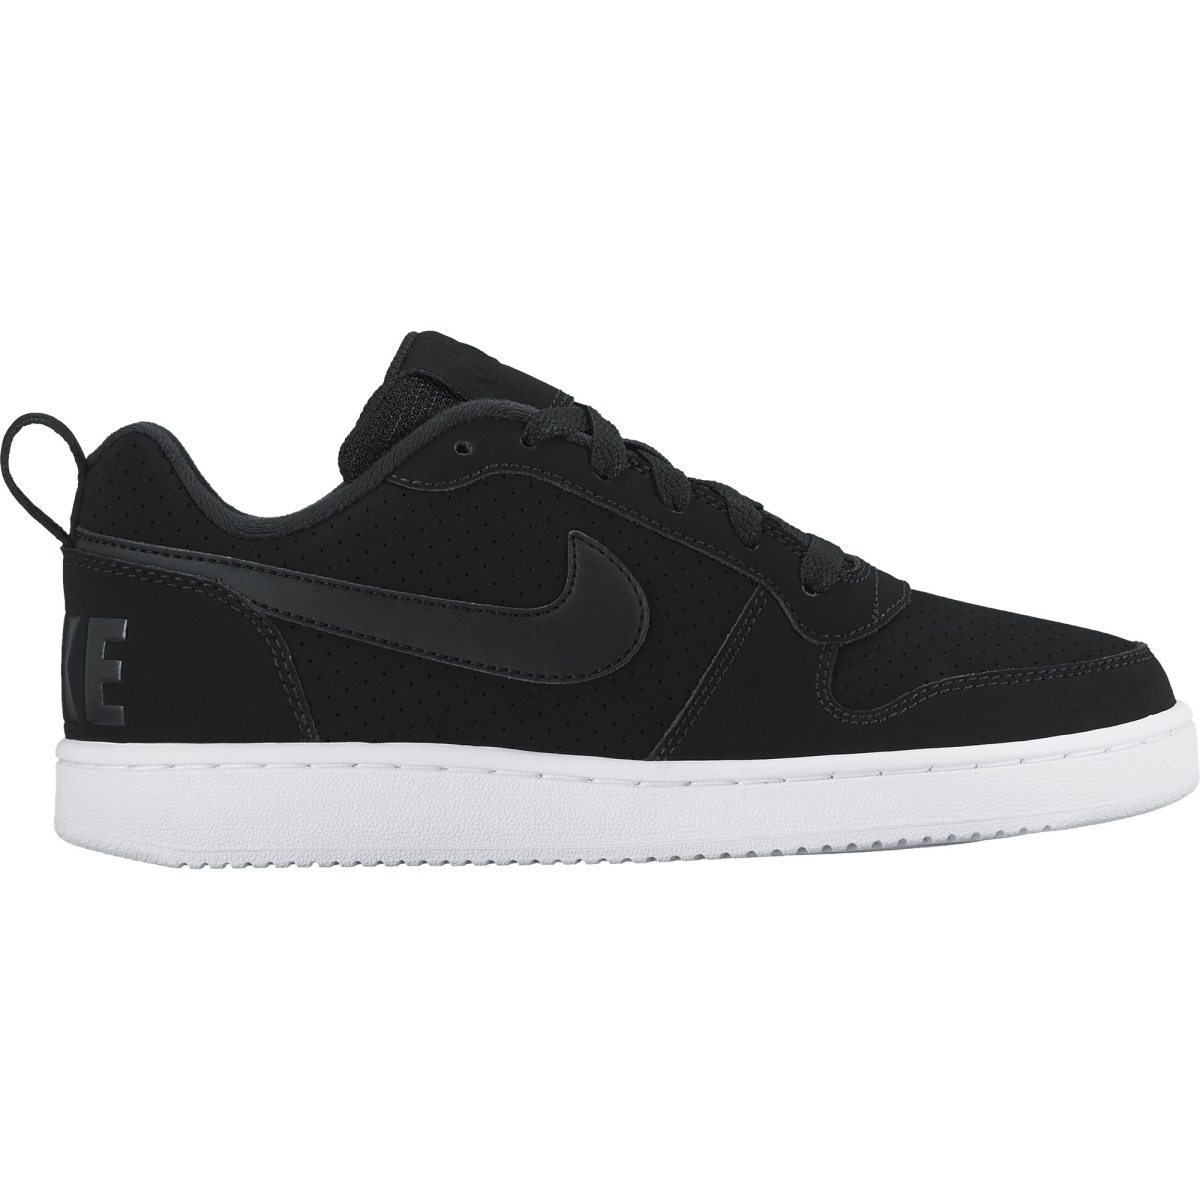 promo code 4e38a aab1d svart nike recreation low fritidssko dam fritidsskor   sneakers